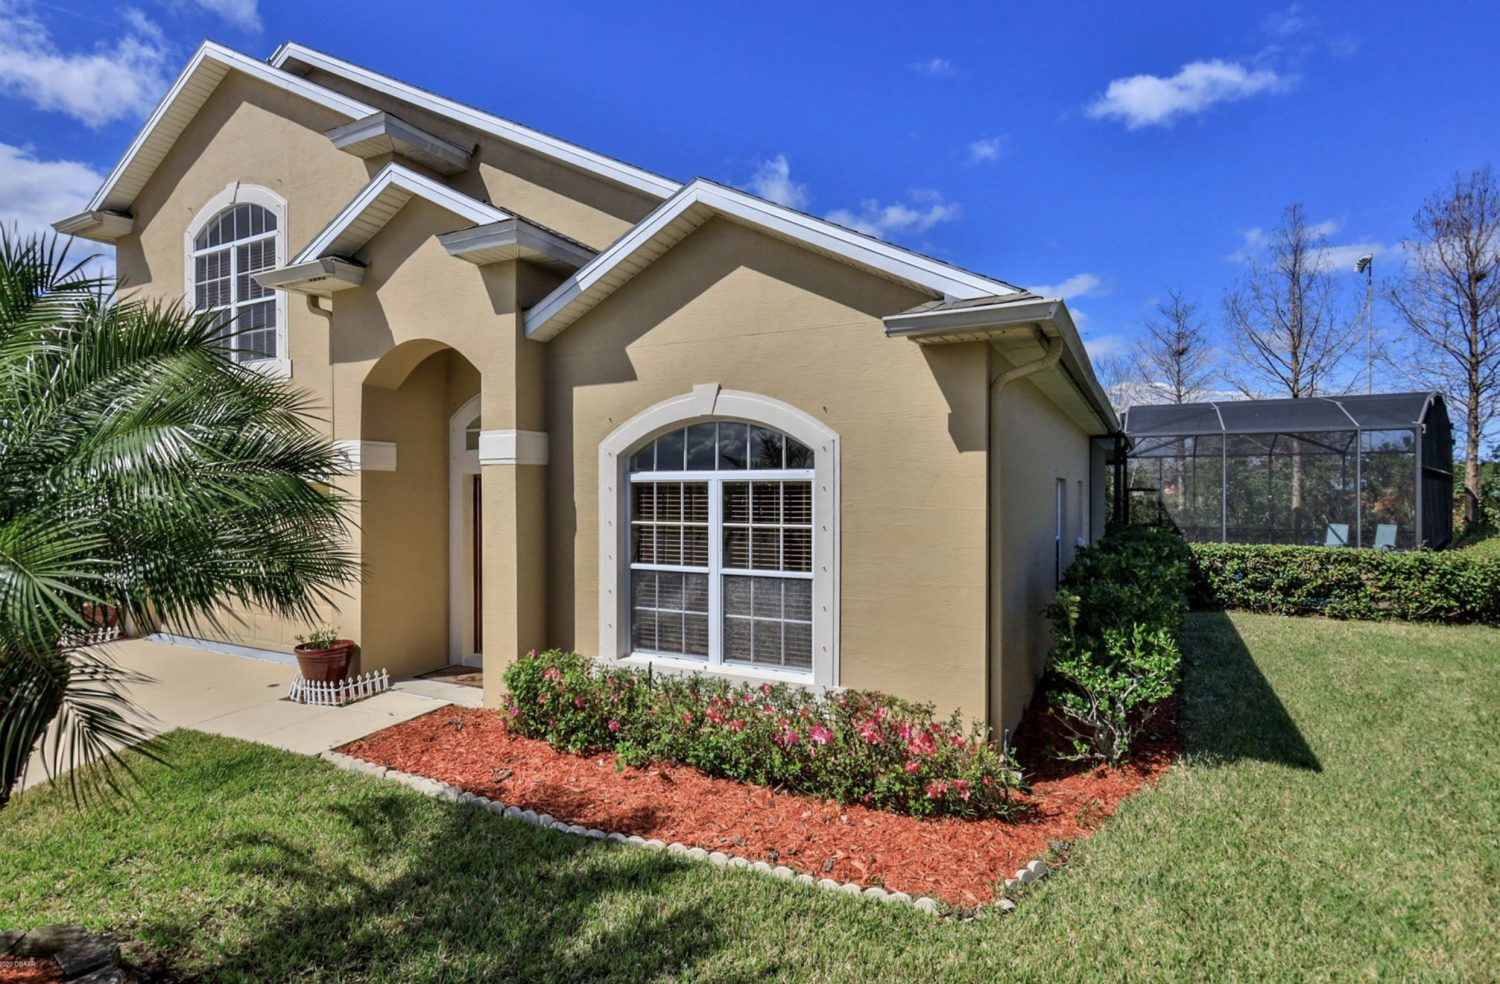 https://www.fly-in.com/5365-cordgrass-bend-lane-in-spruce-creek-mls-1068349/